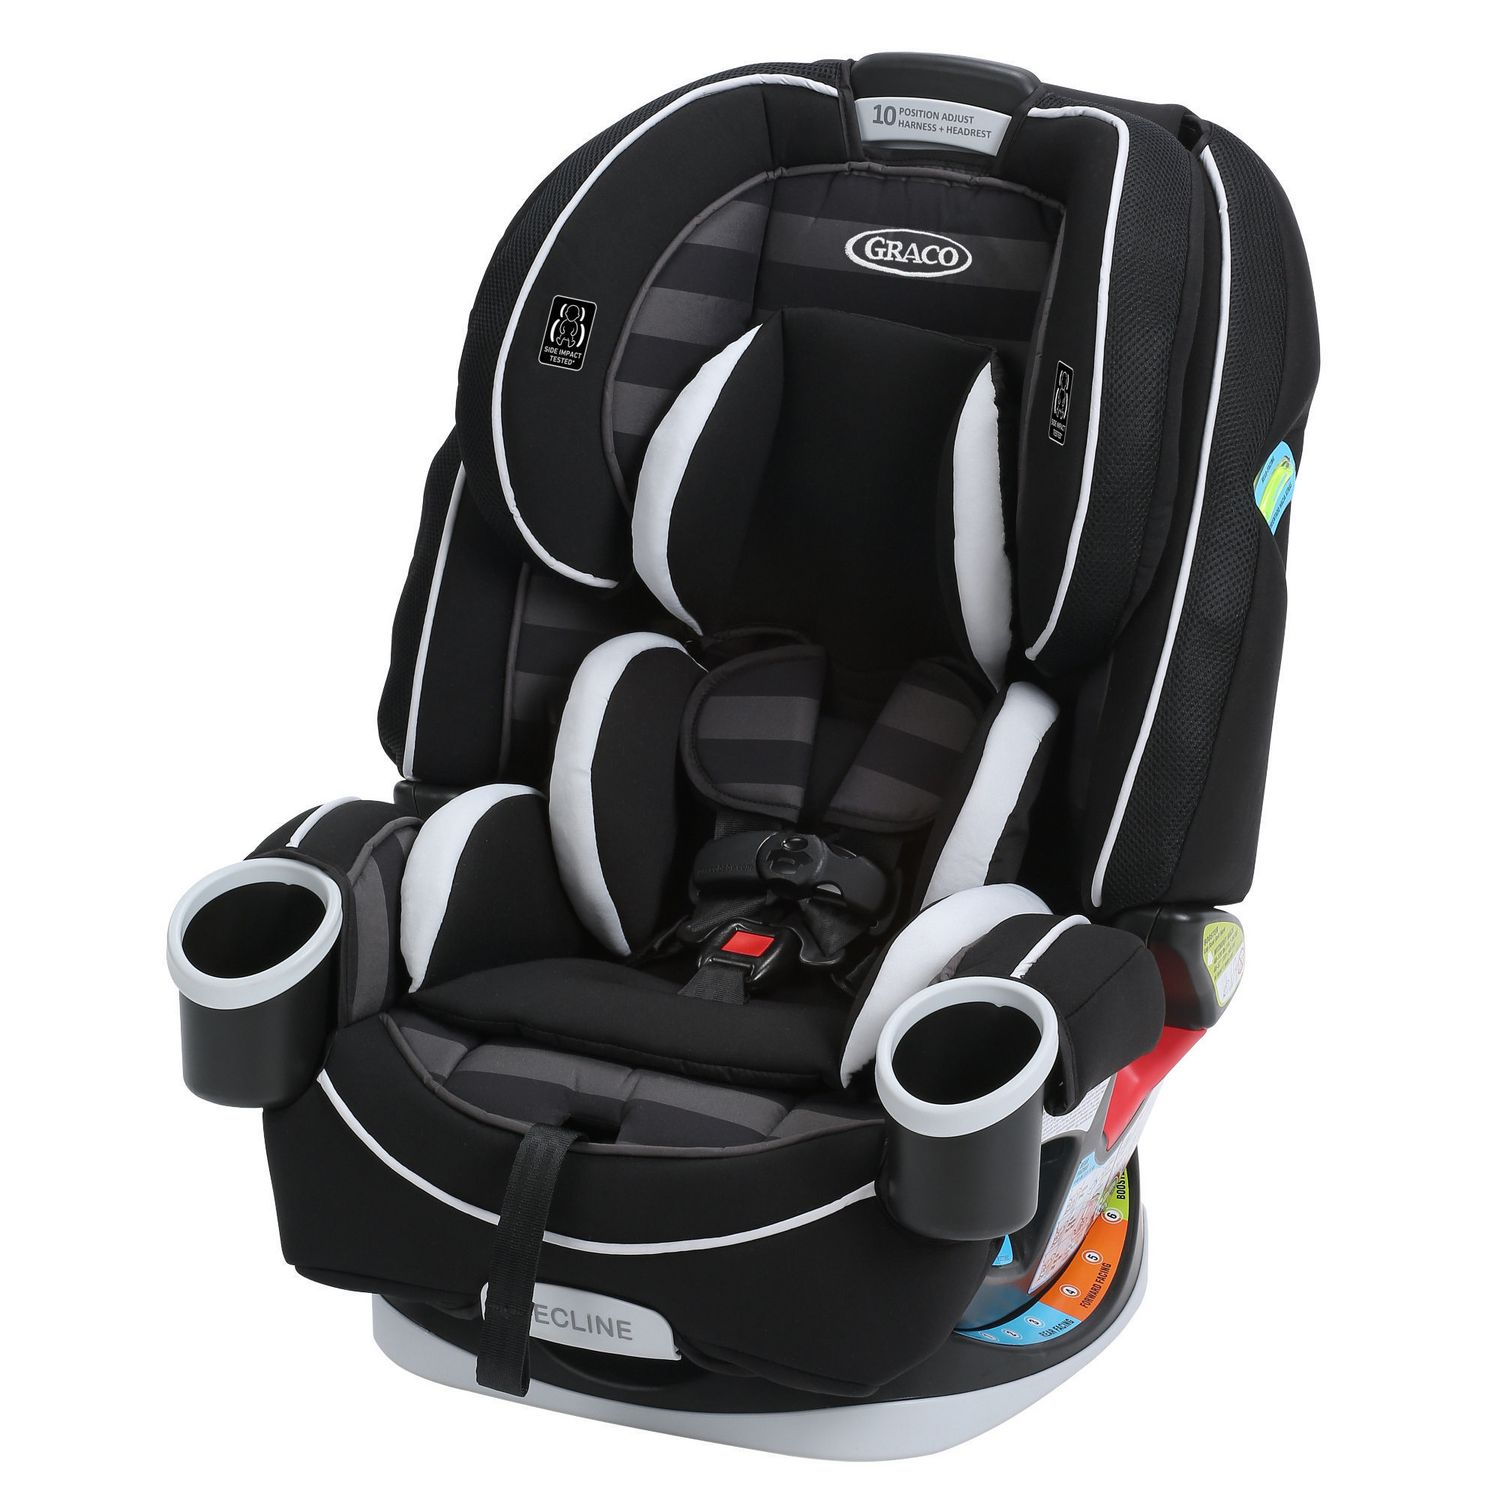 Black and grey Graco 4Ever 4-in-1 convertible car seat - best convertible car seat